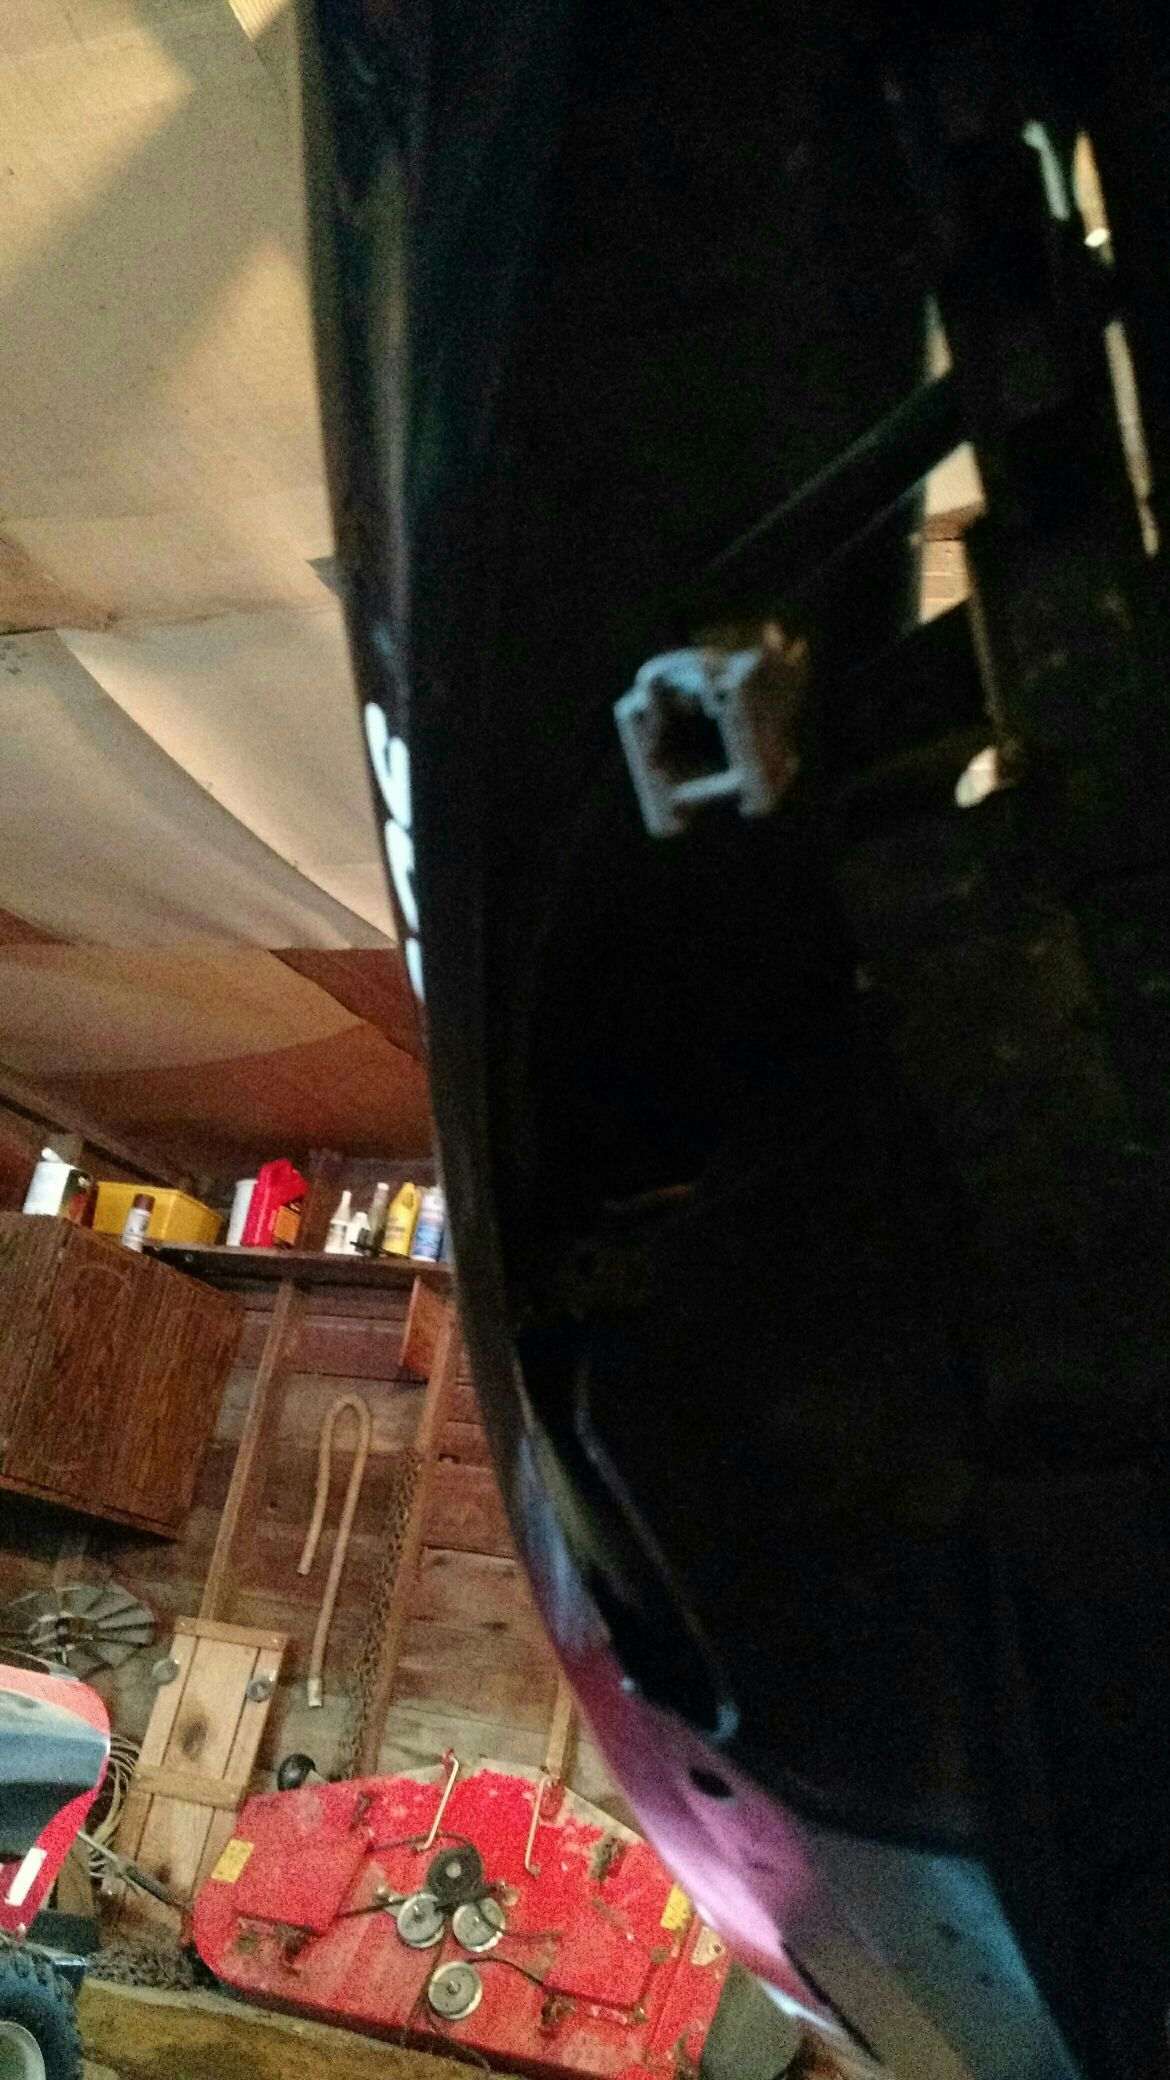 Turn Signal Wiring Zx6r Forum 1998 Harness Click This Bar To View The Full Image